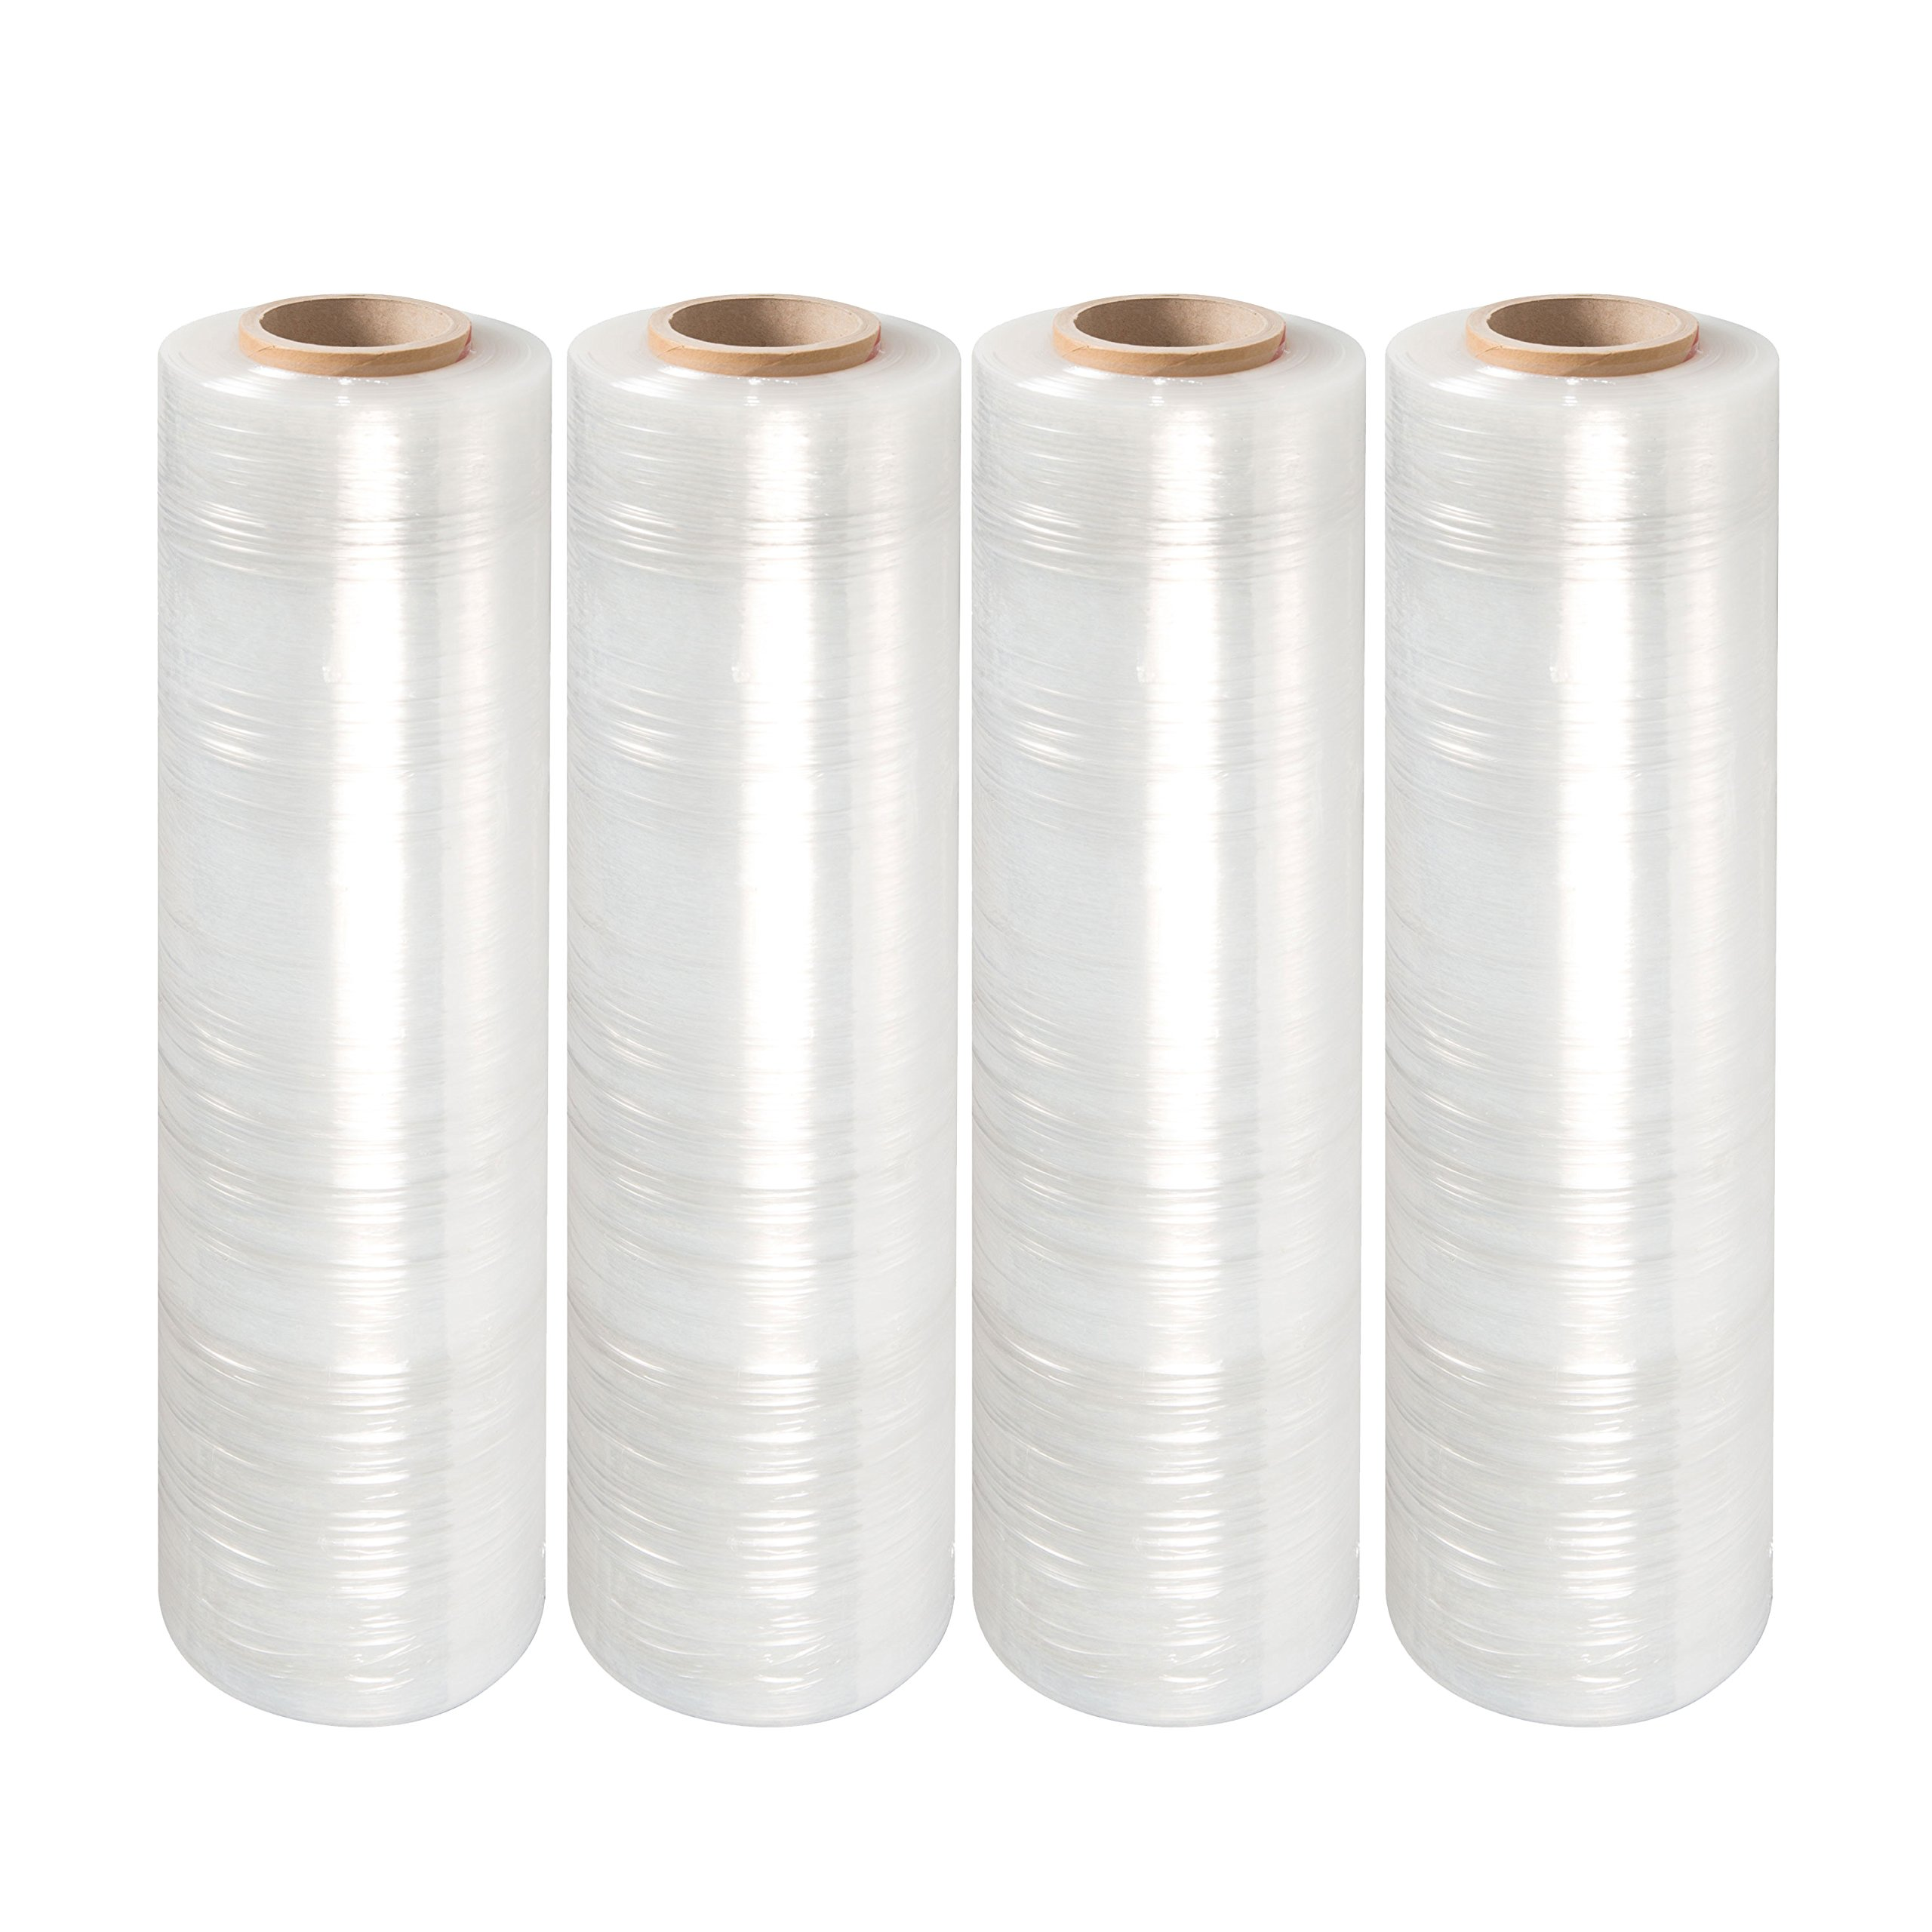 LTB 2070 Stretch Wrap Film, 70 Gauge, 18'' x 1500 Ft Per Roll, Clear (Pack of 4) by LTB MFG (Image #1)